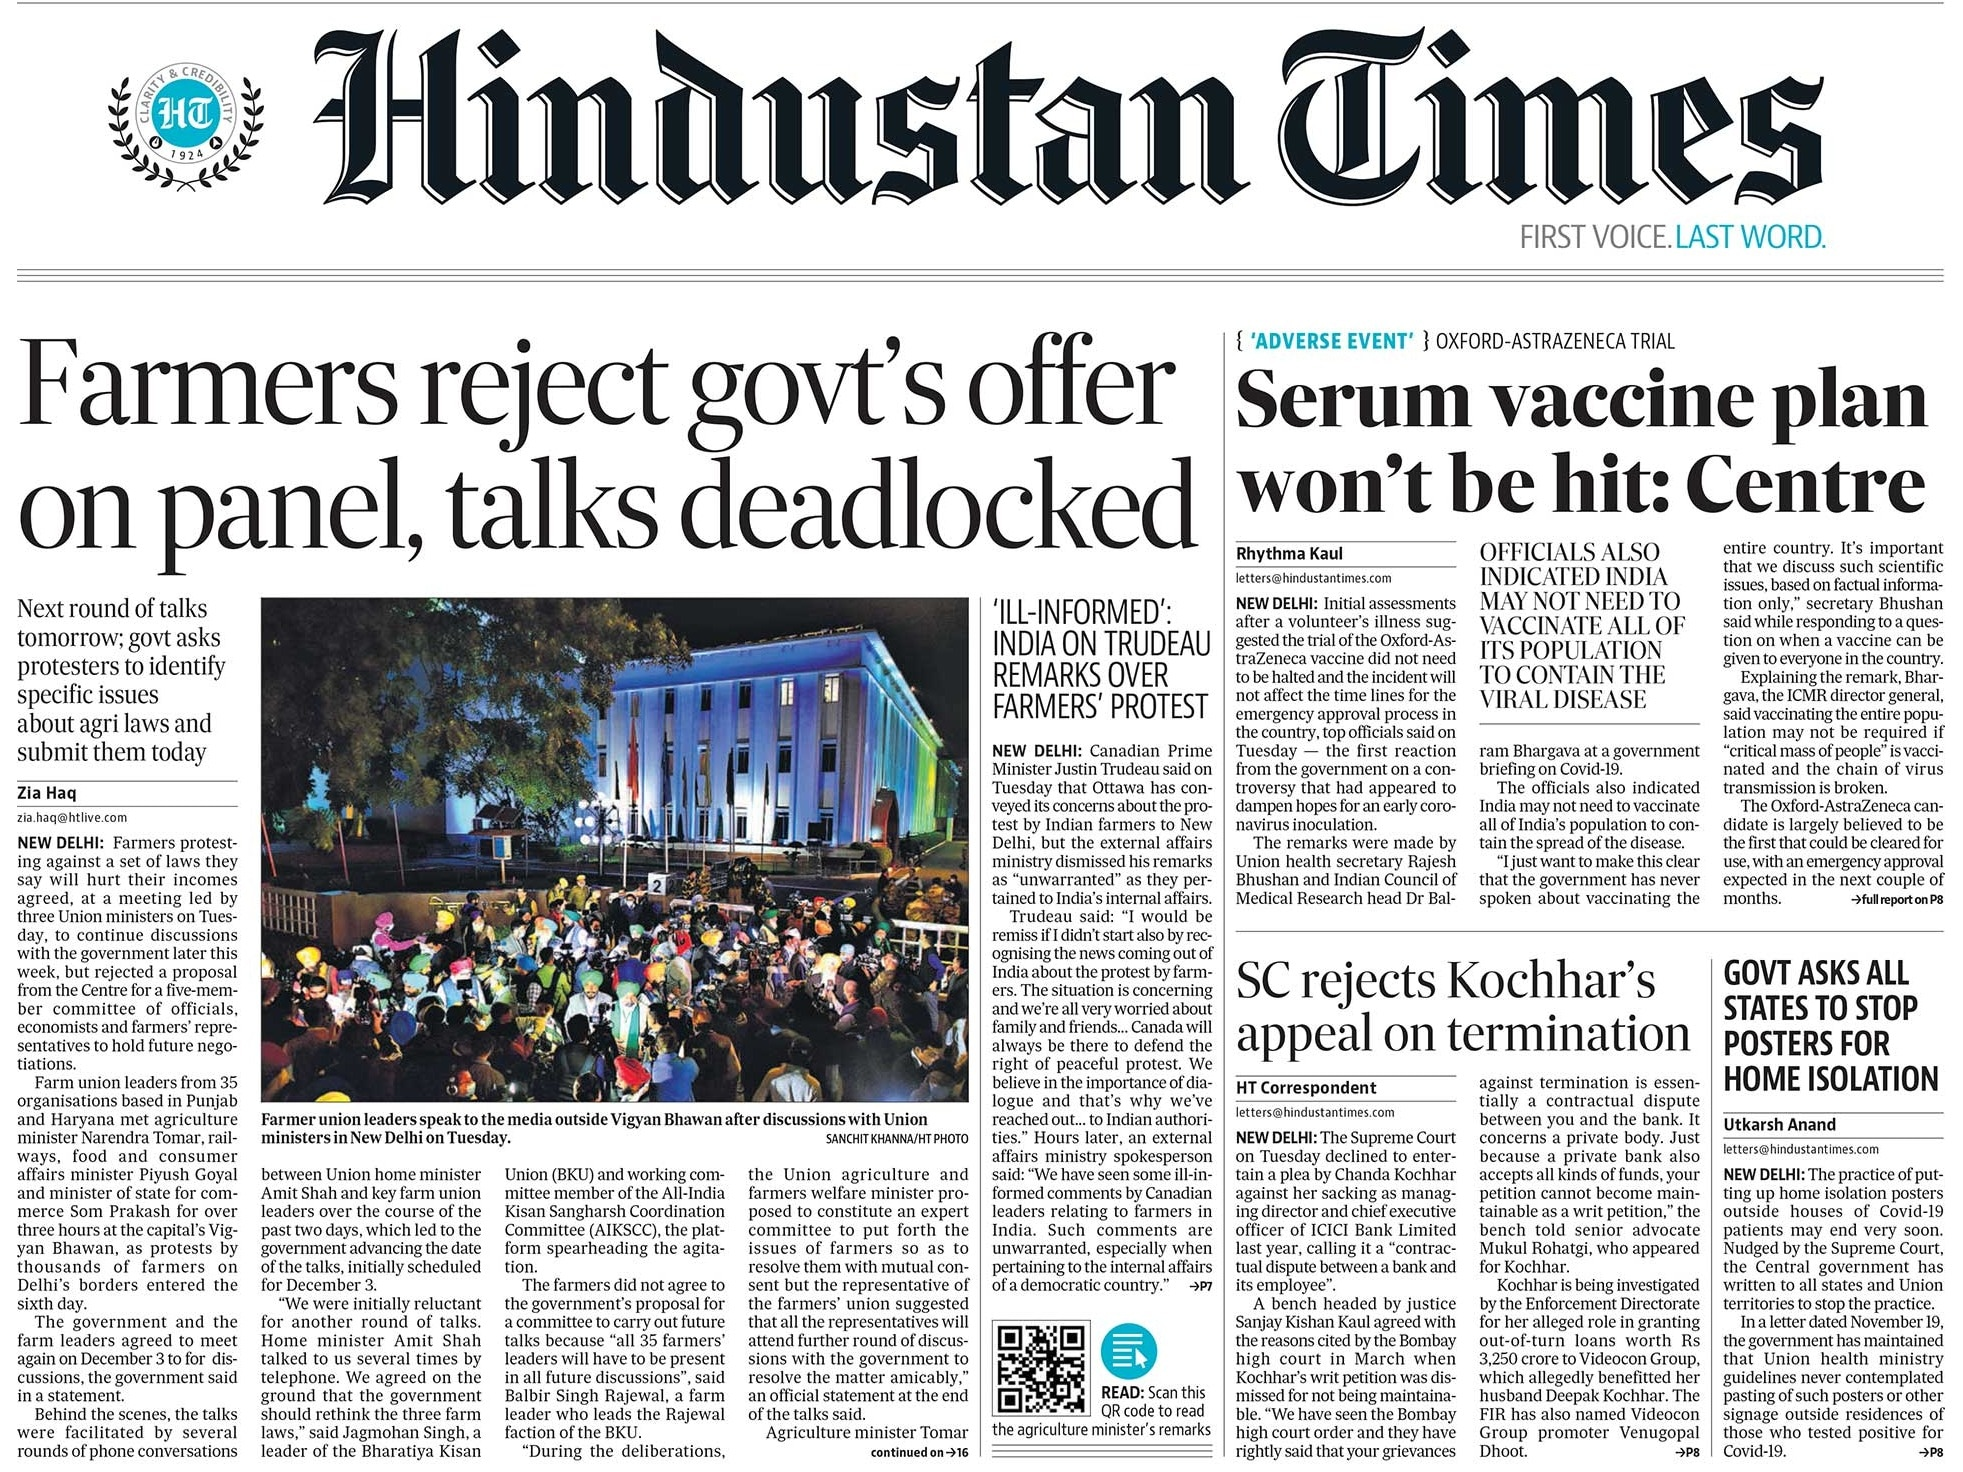 Newspaper Headlines: Centre-Farmers Talks Deadlocked, India Reacts Sharply To Justin Trudeau\'s Remarks On Farmers Protest